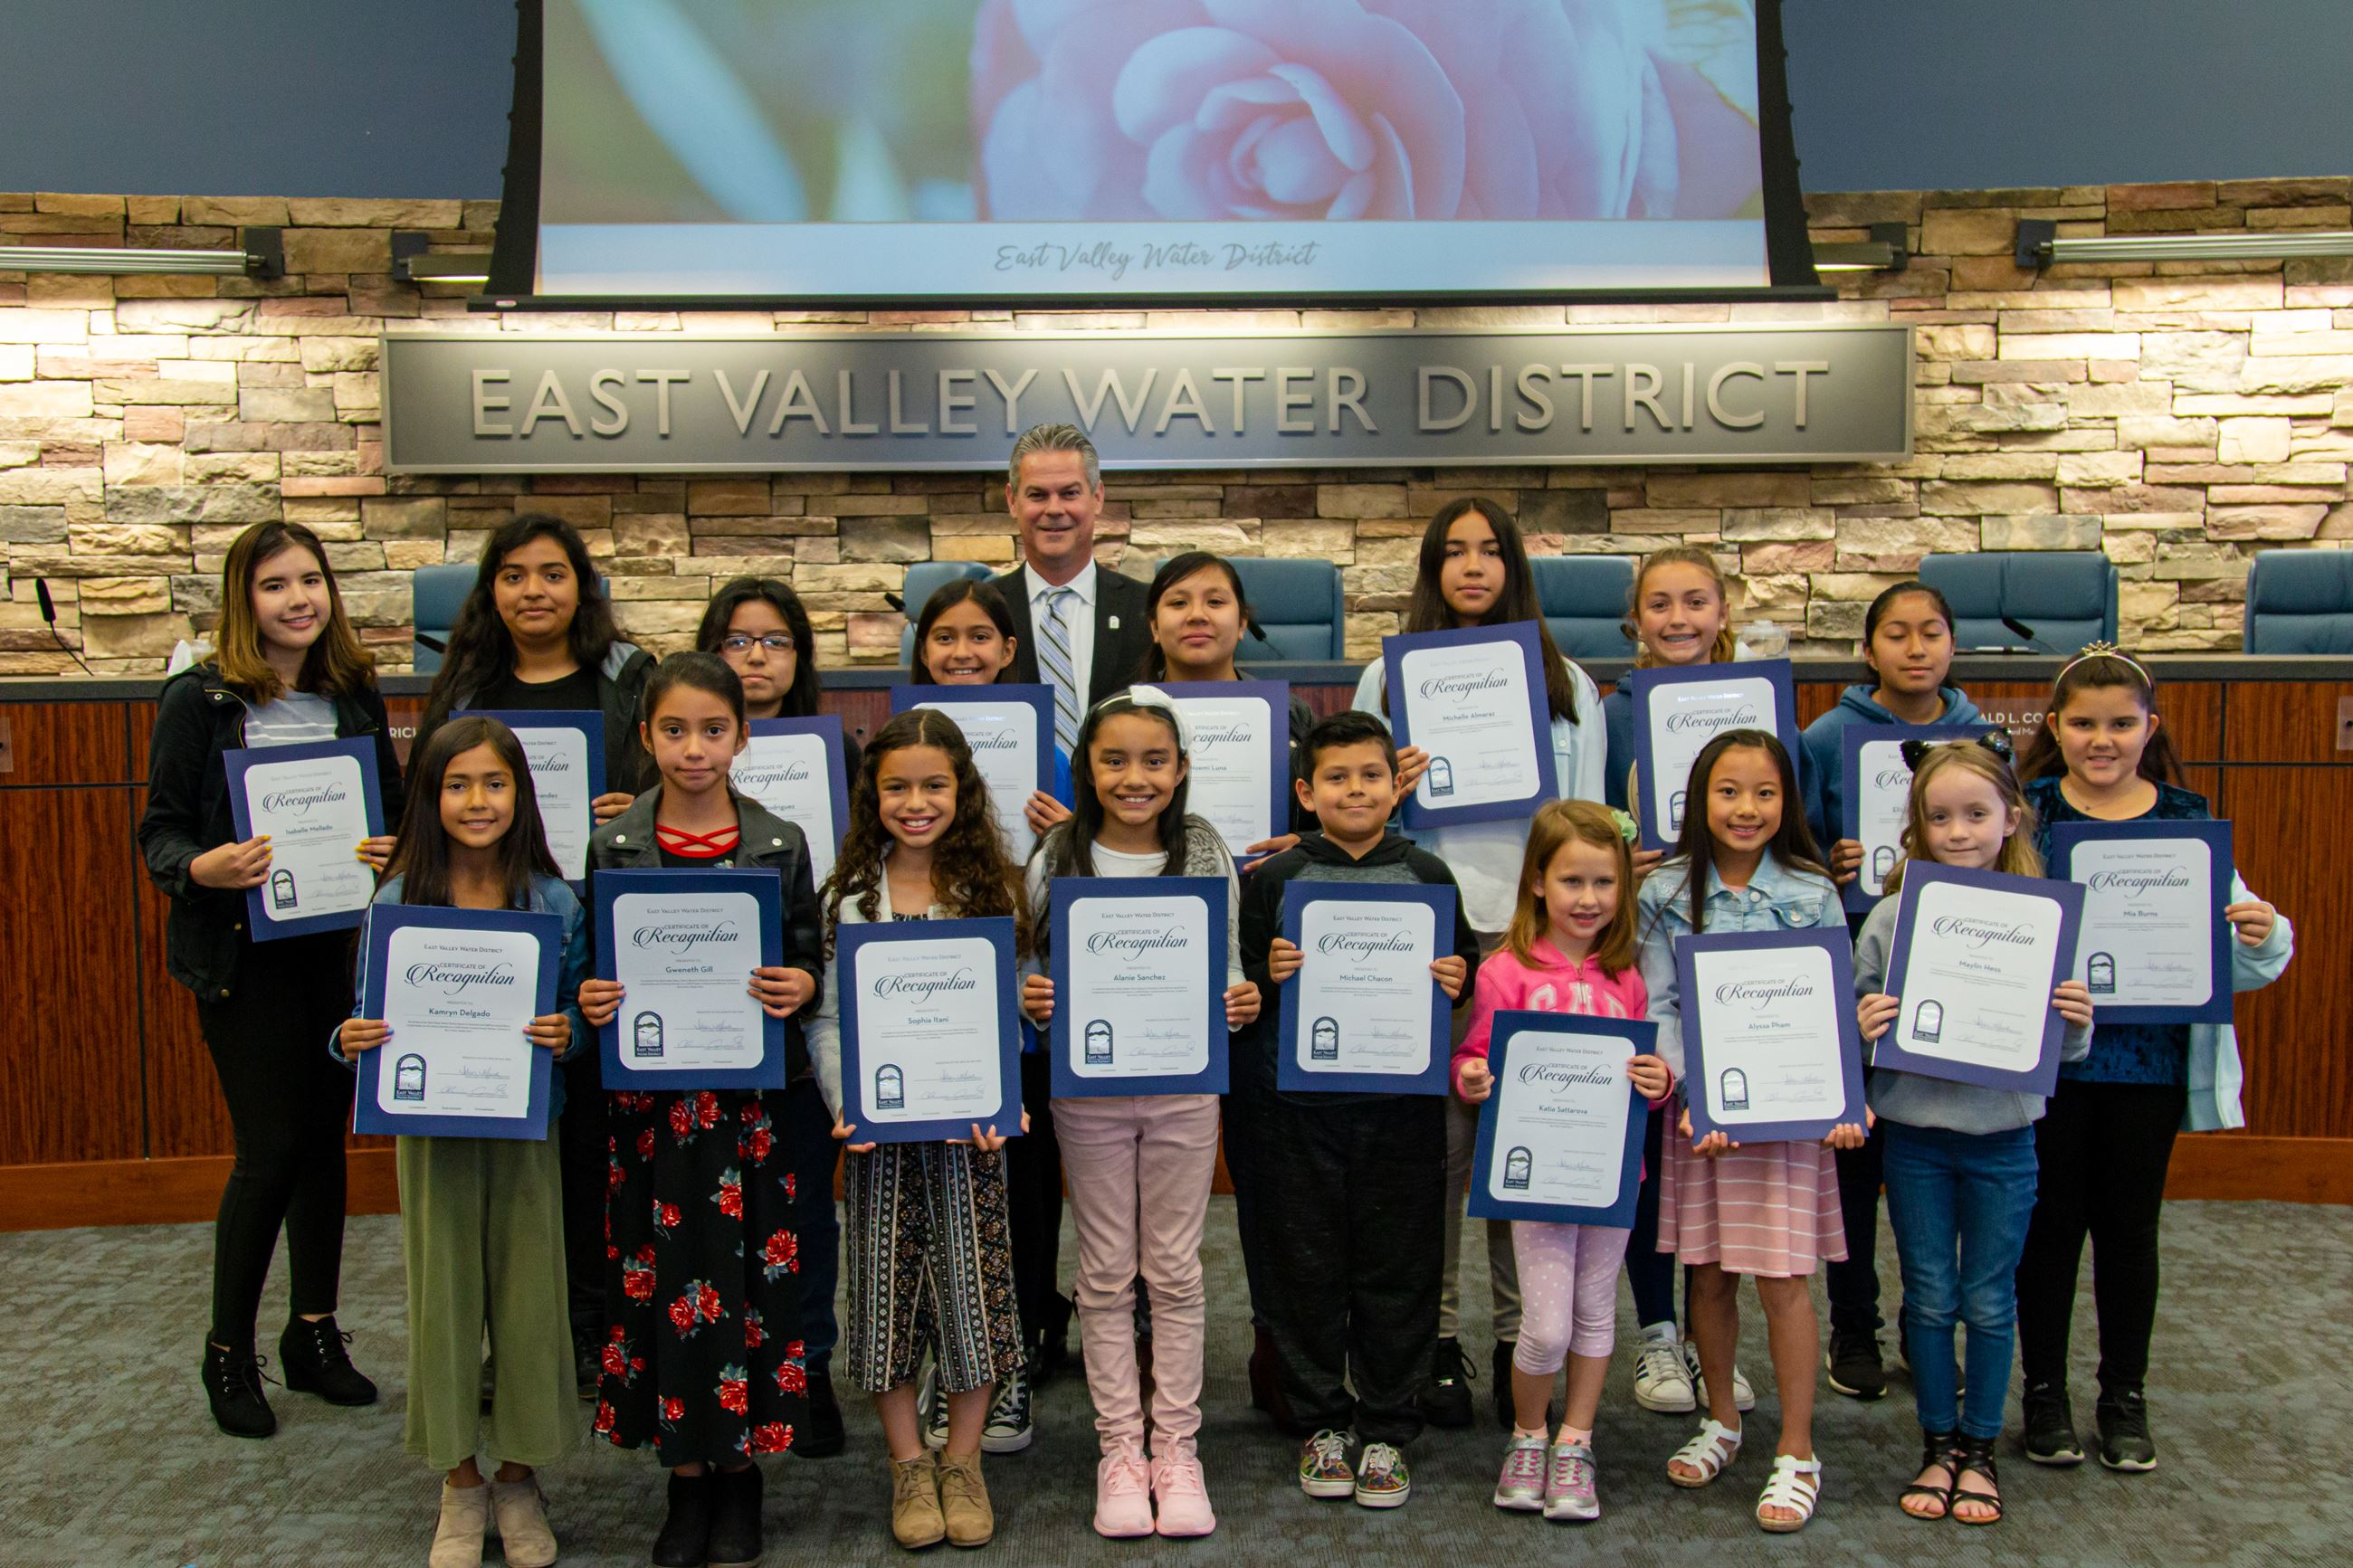 2019 Poster Contest Winners Receive their Award